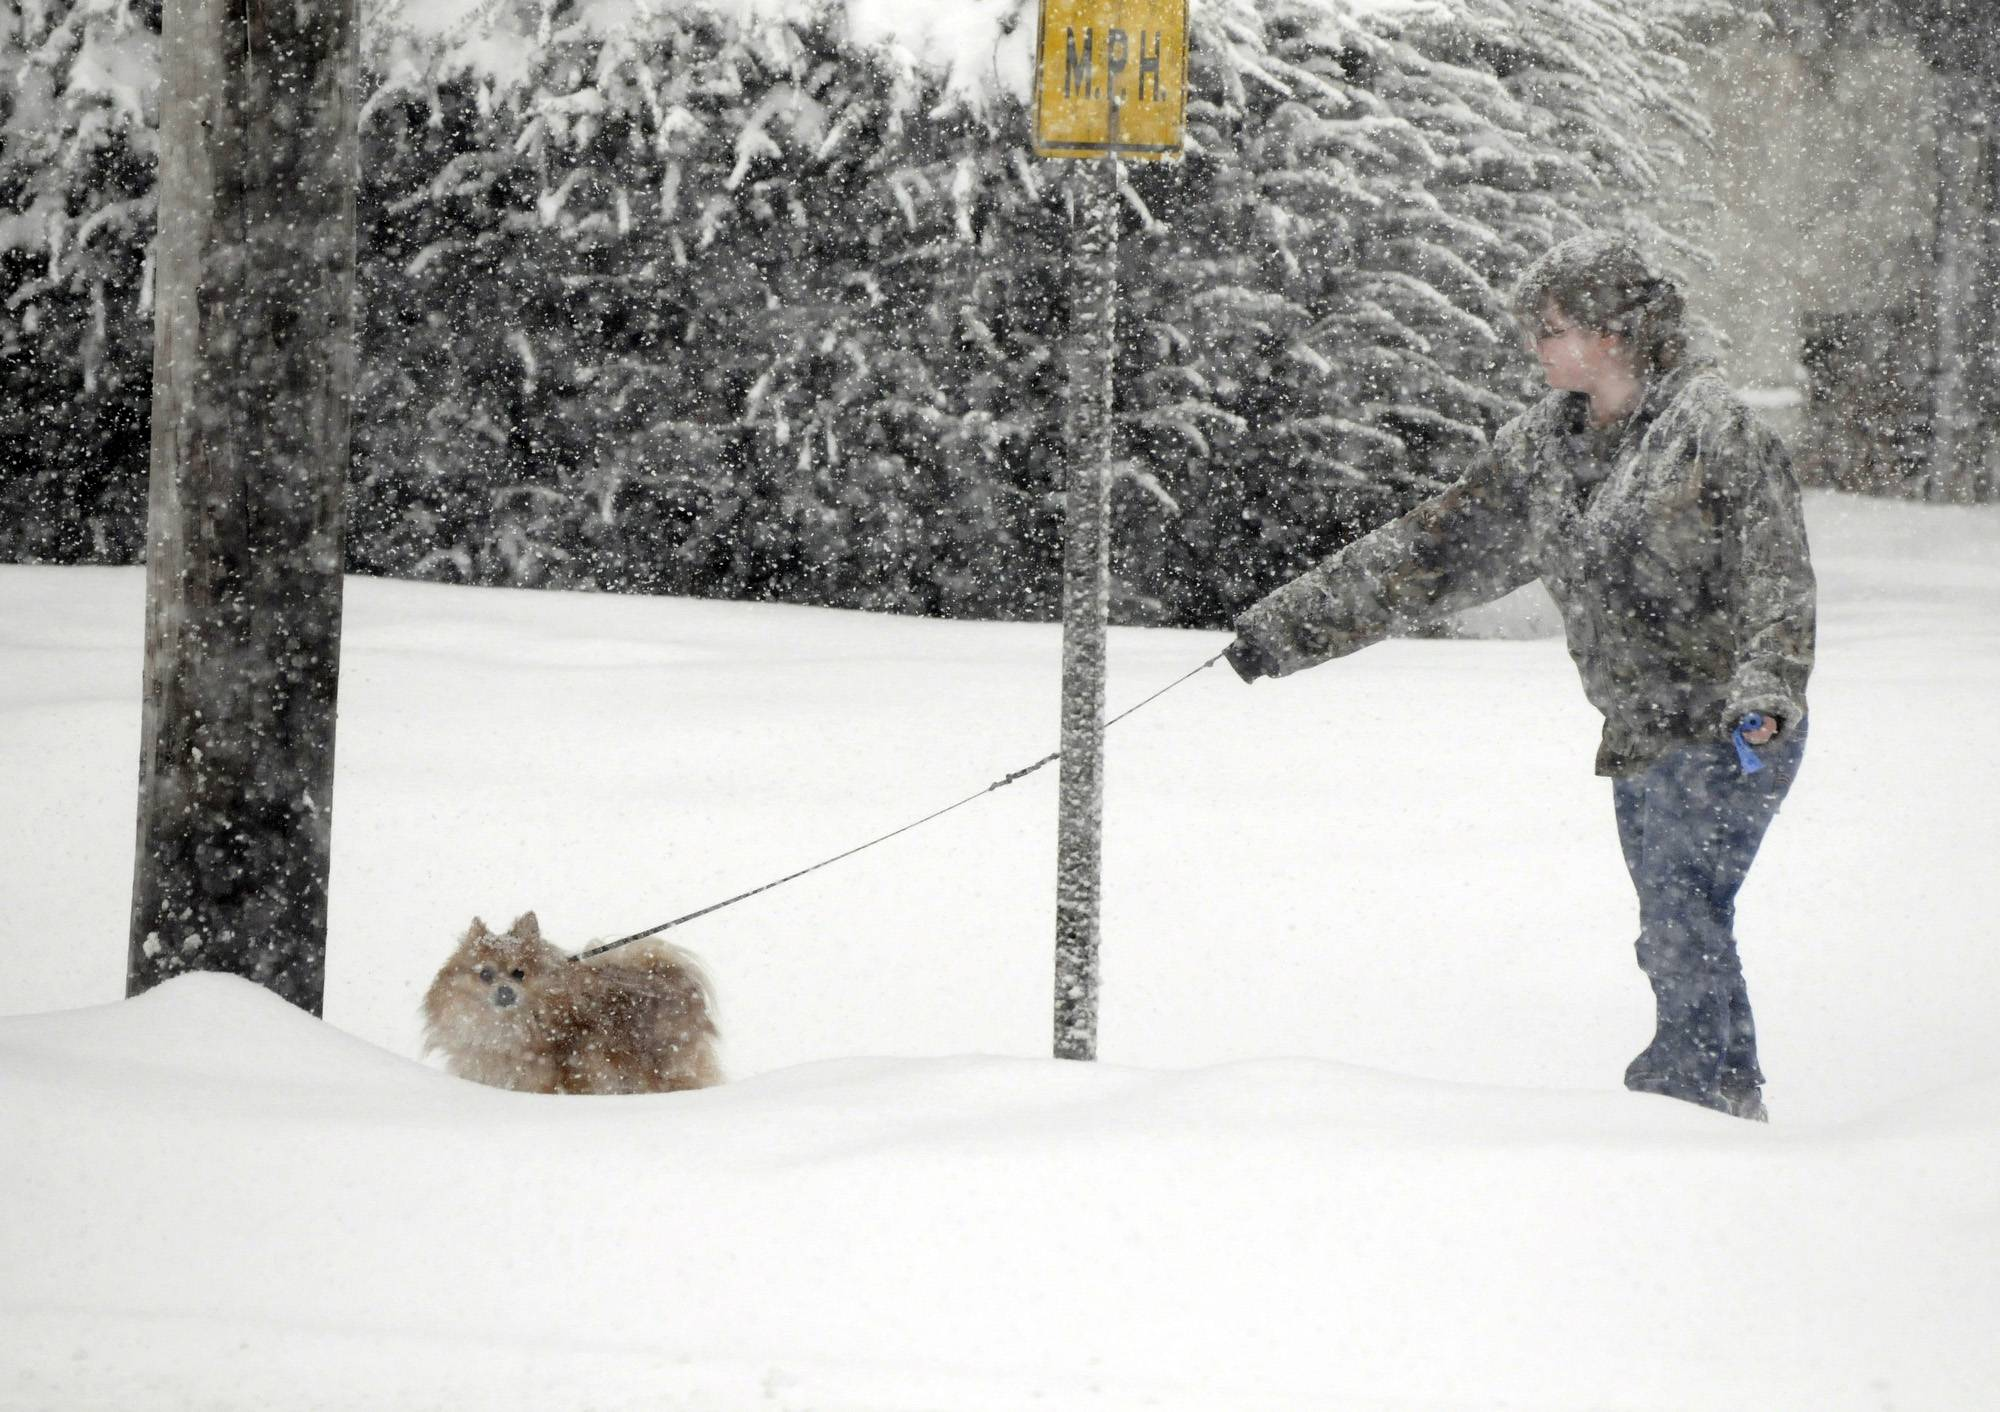 Leesha Ague, of Moline, Ill., gets covered in snow while she waits for Bear, her 4-year-old Pomeranian, to make a decision during a quick walk along 7th Avenue in Moline, Ill., Monday, Feb. 17, 2014. The National Weather Service on Monday forecast up to 8 inches of snow for areas of northern Illinois and 5 inches in central Illinois.